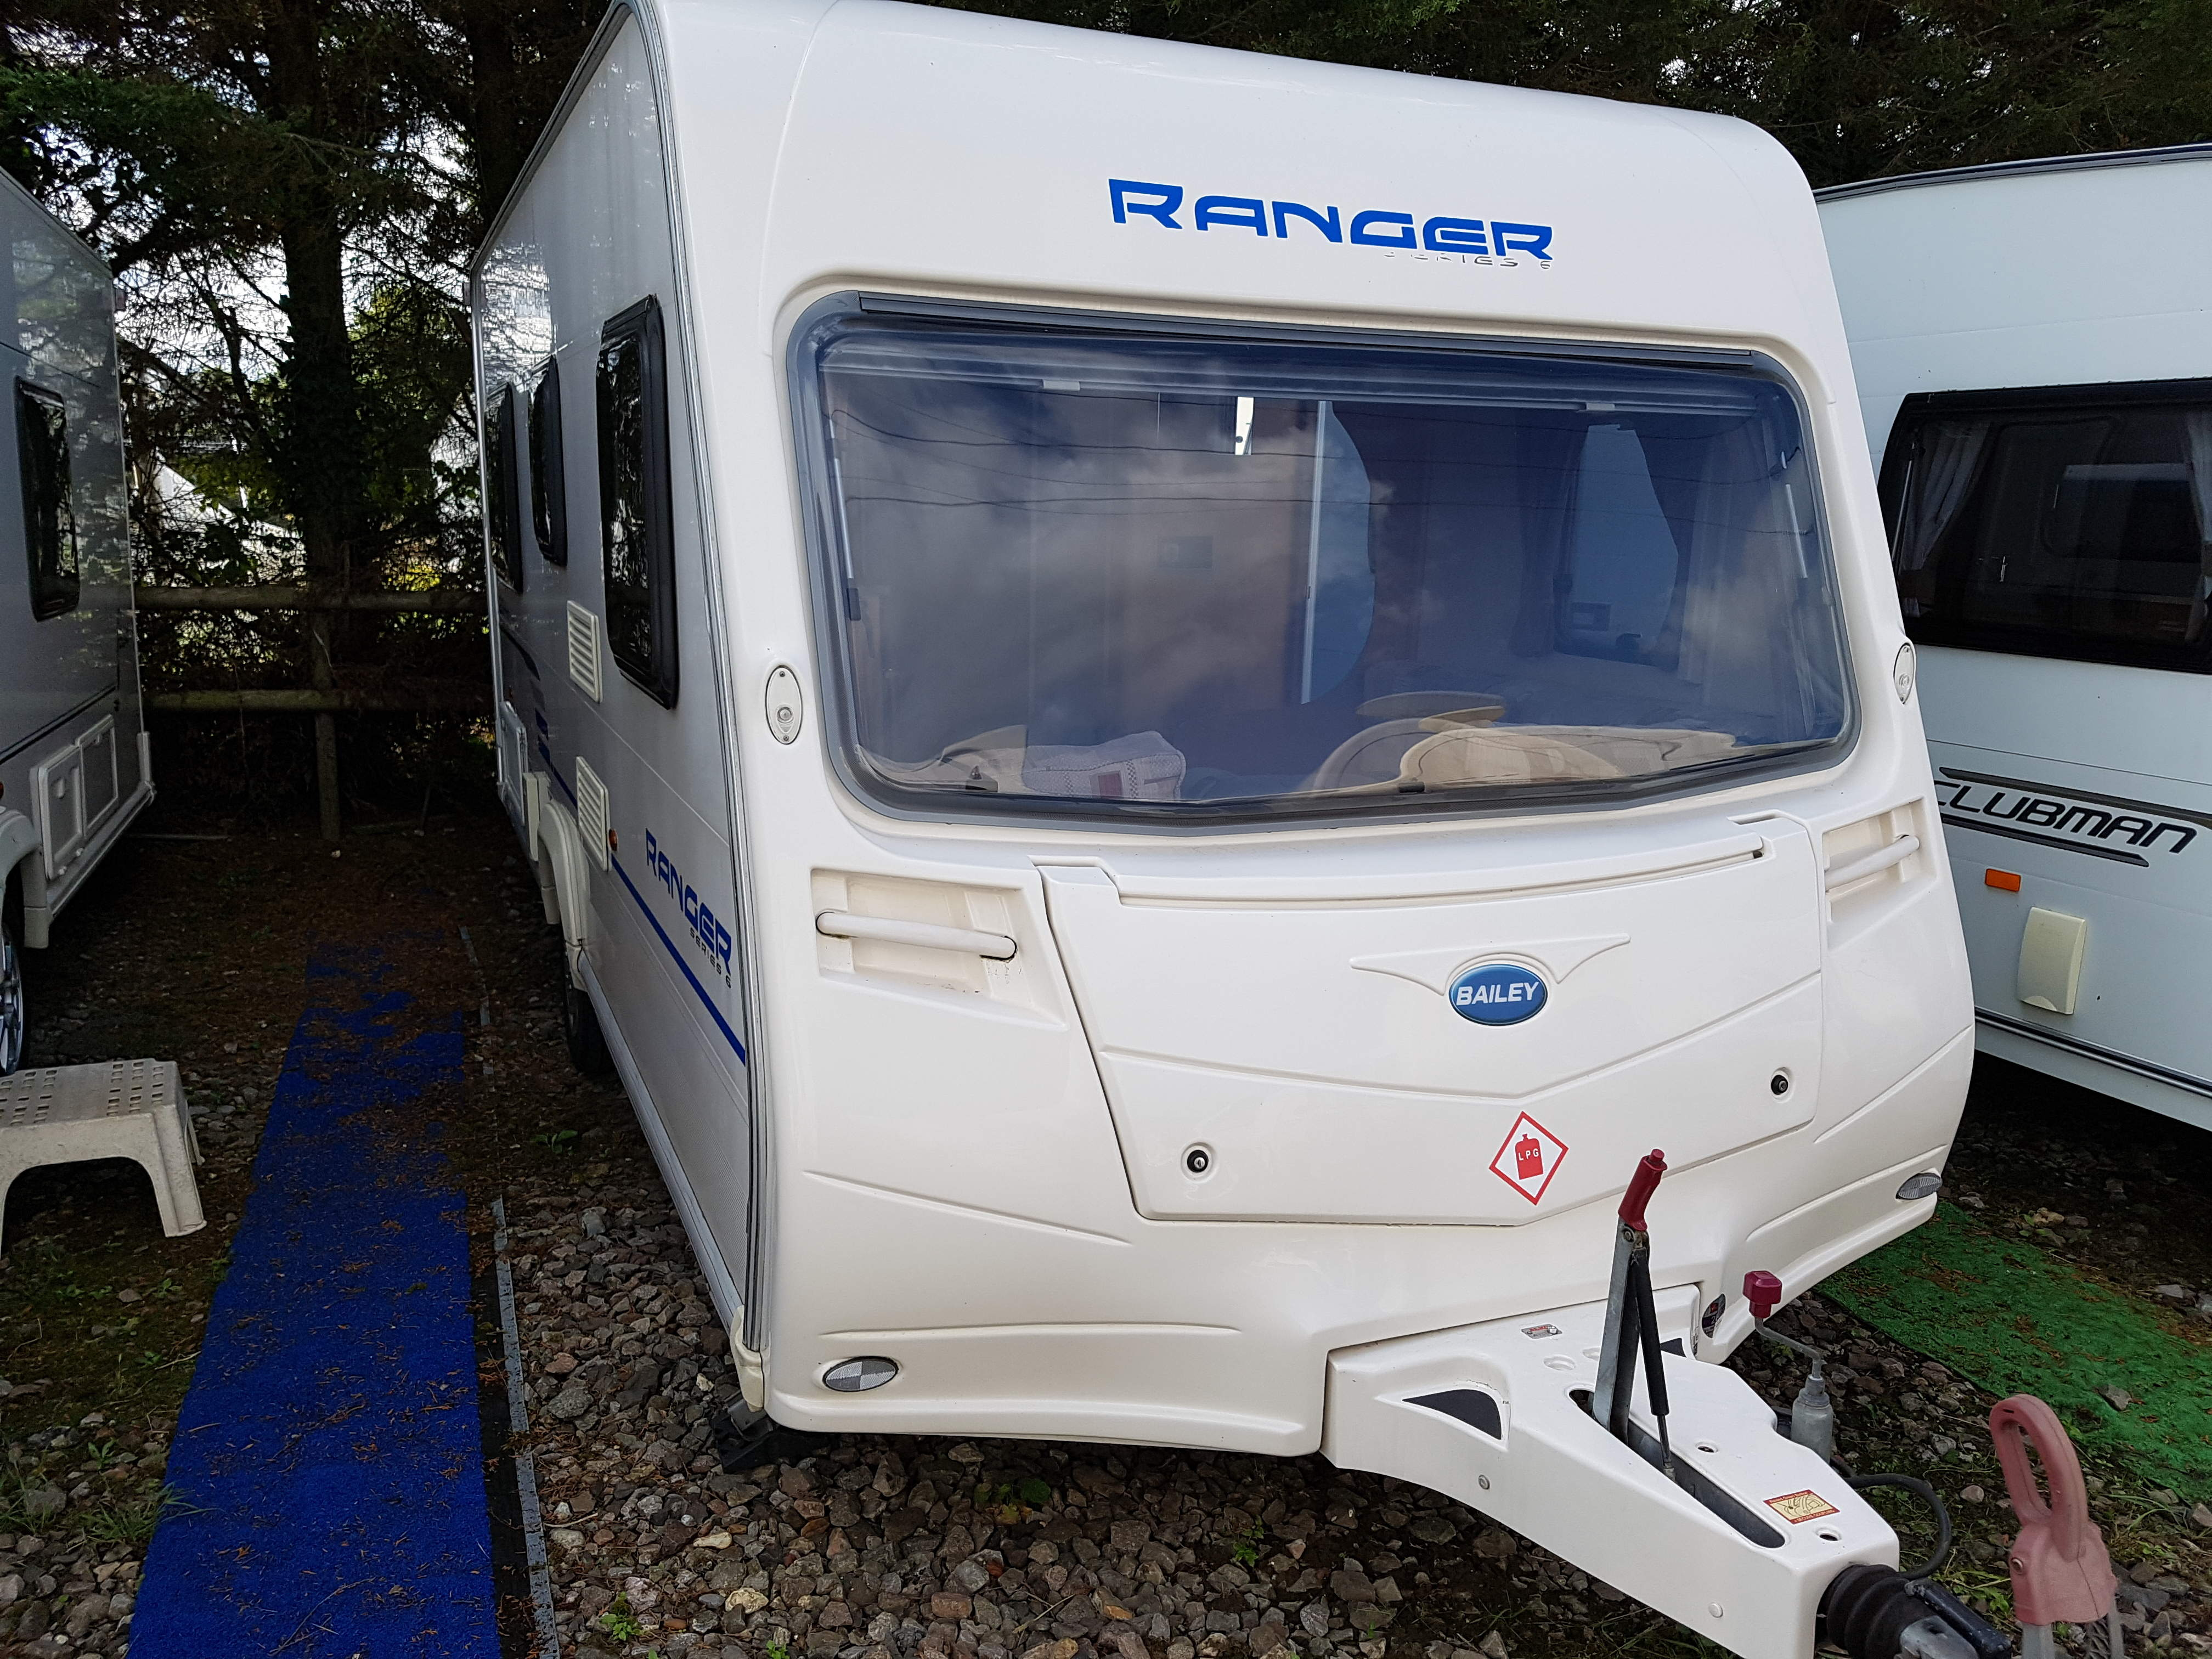 2009 Bailey Ranger 460/4 Series 6 4 Berth Fixed Bed Lightweight Caravan Max laden Just 1208kgs